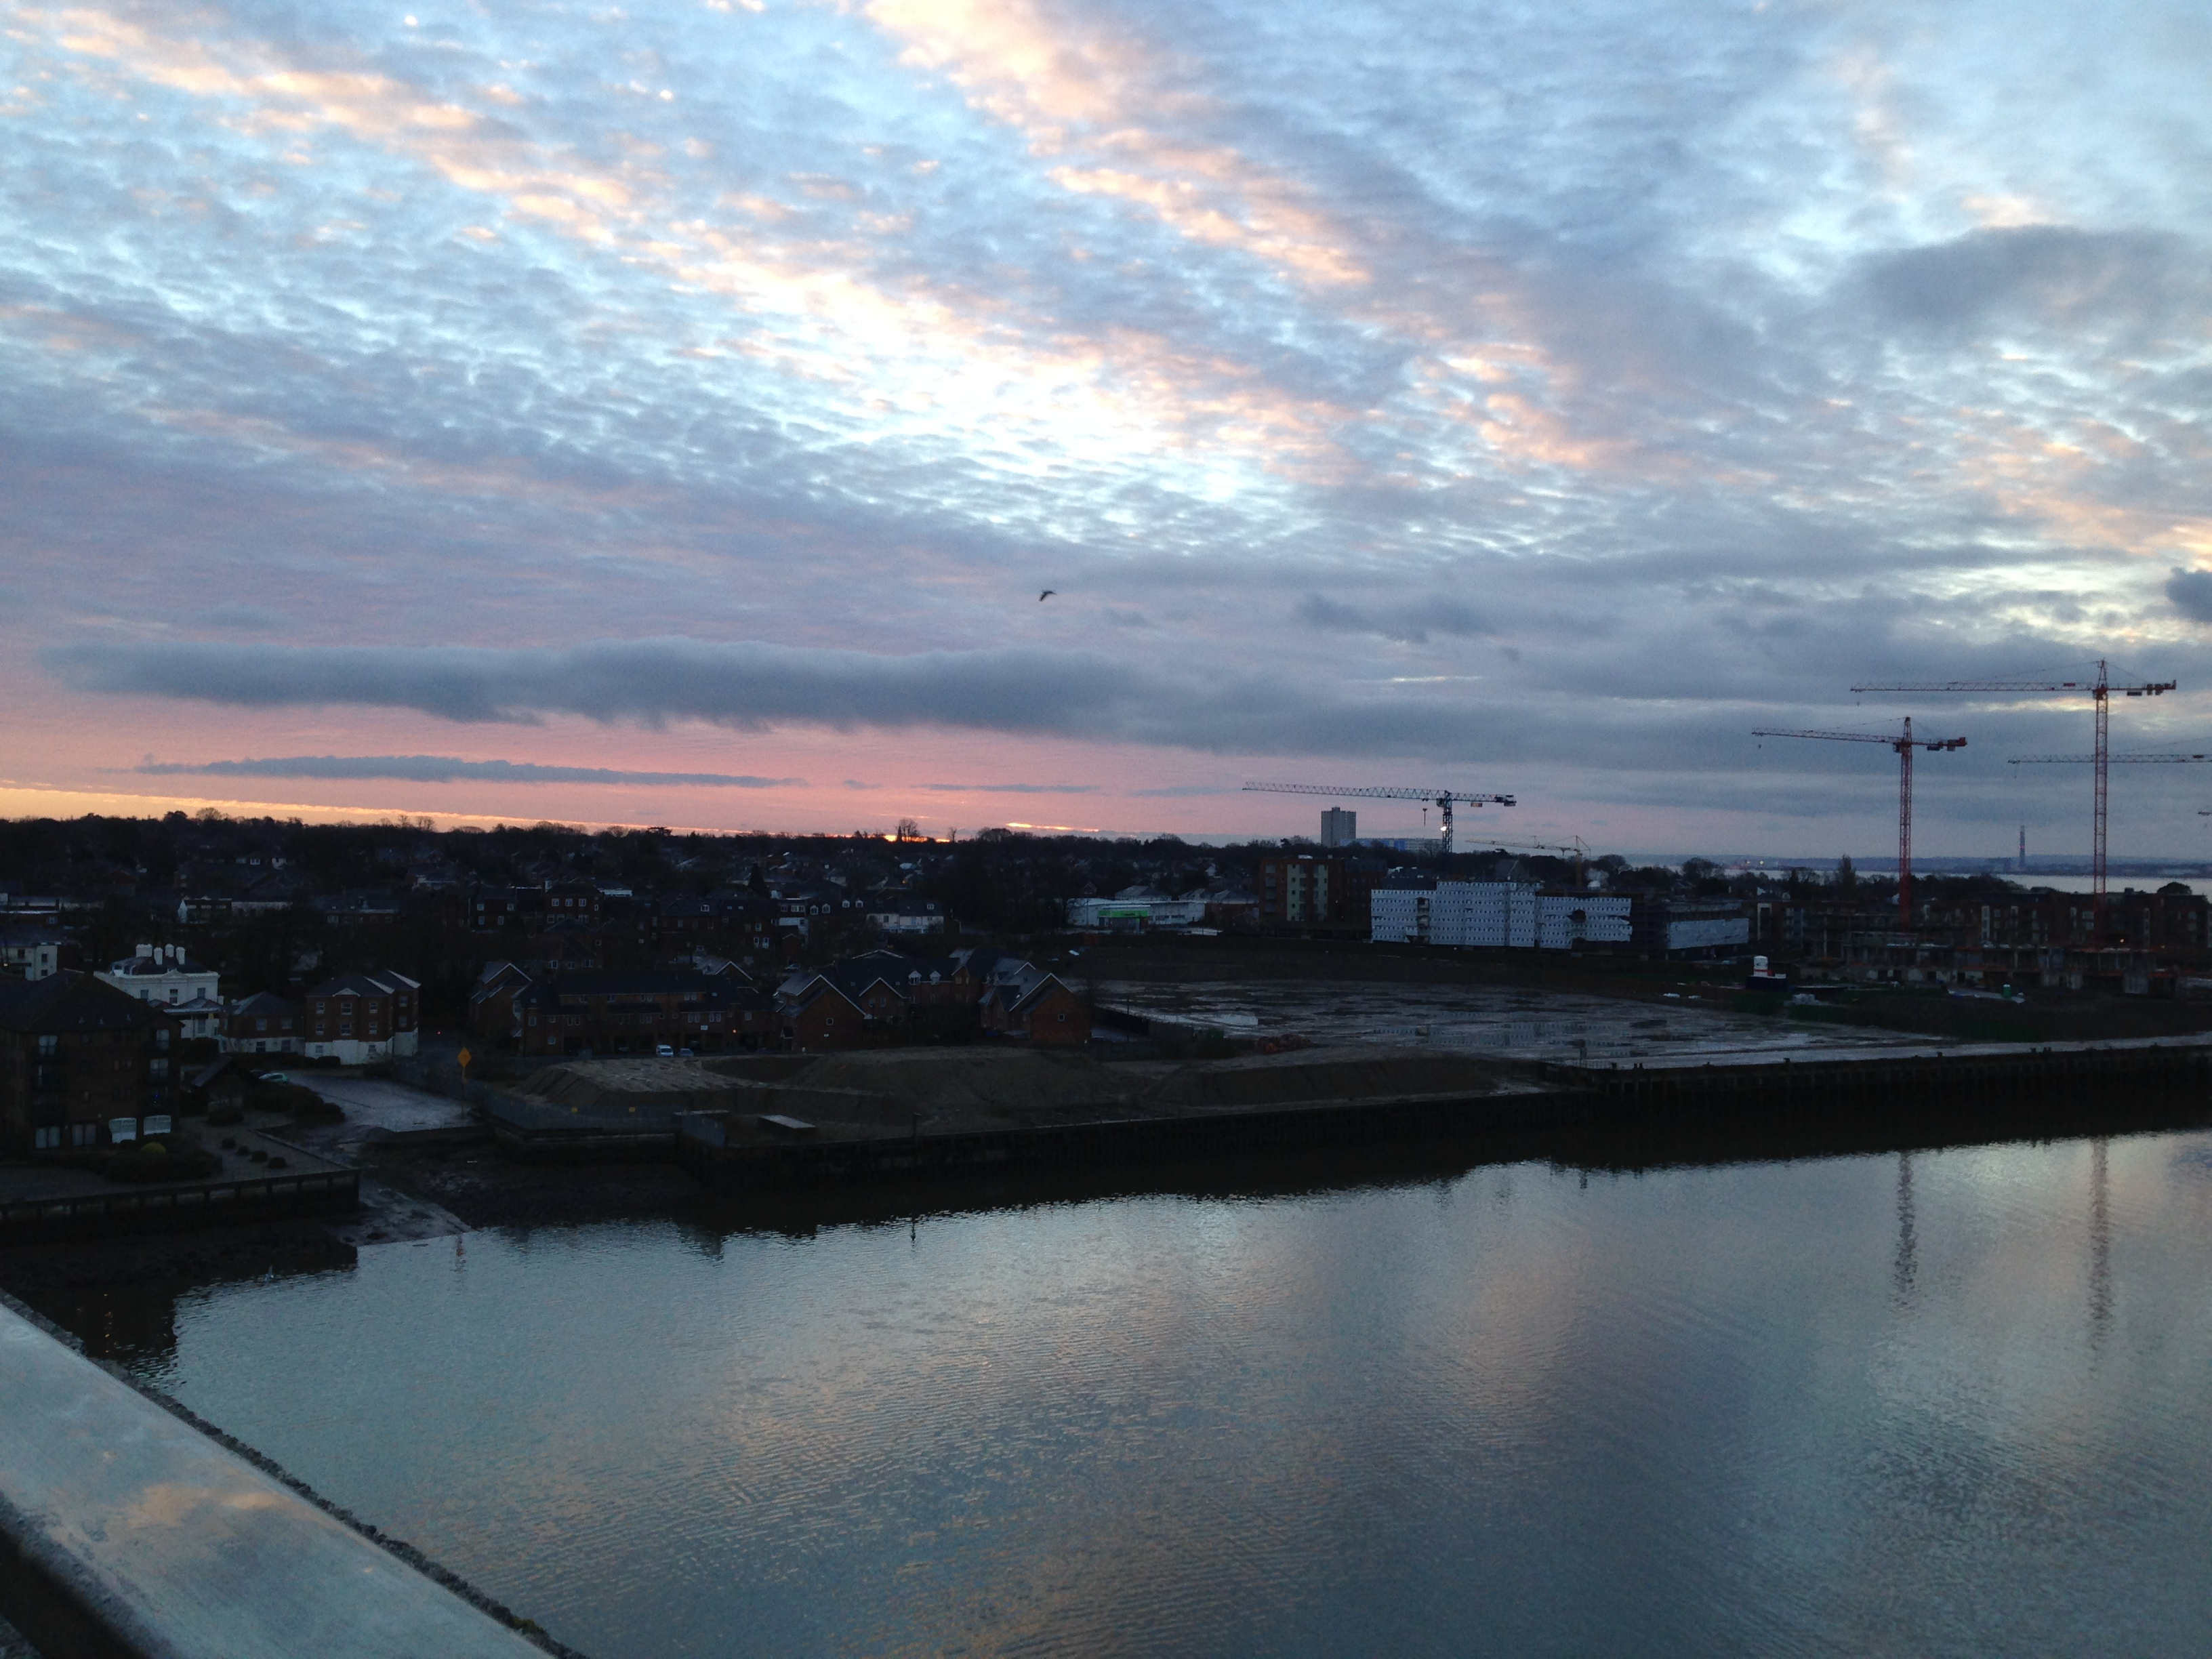 The sky over Woolston